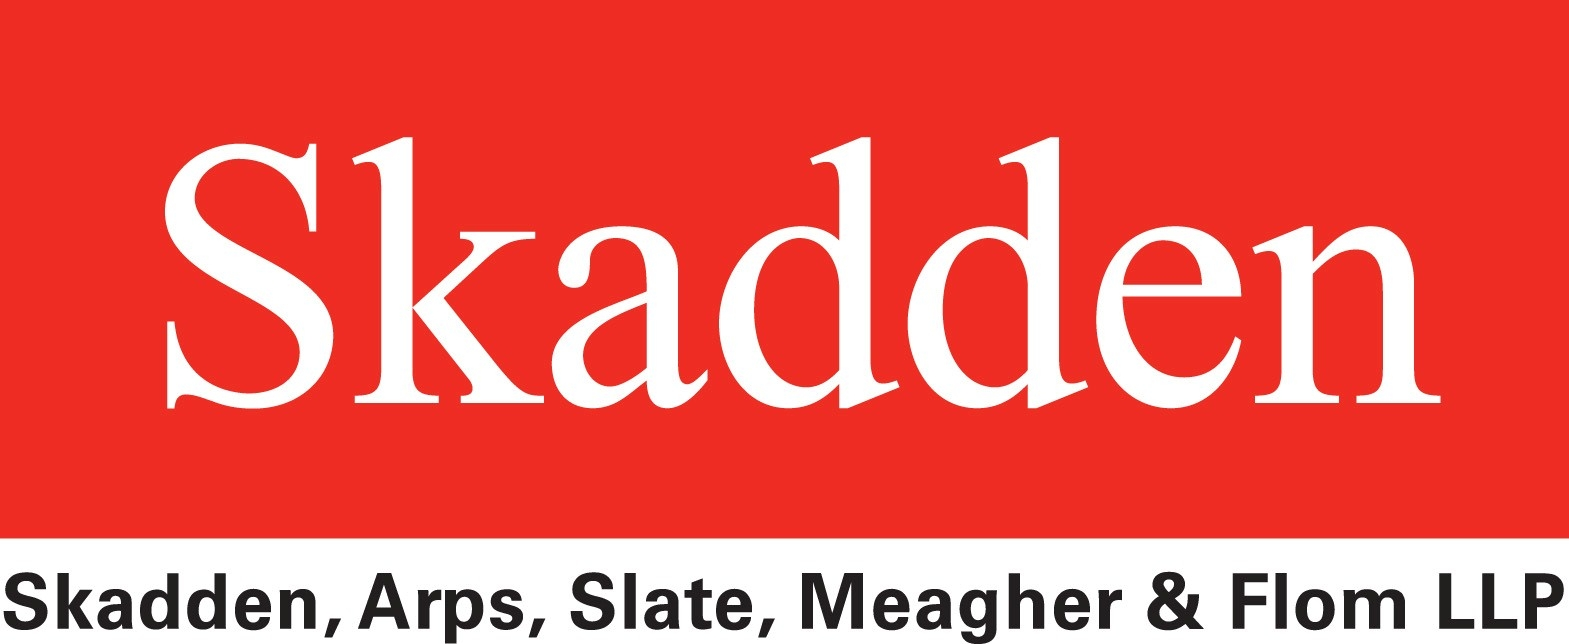 Top_Legal_Advisory_Skadden